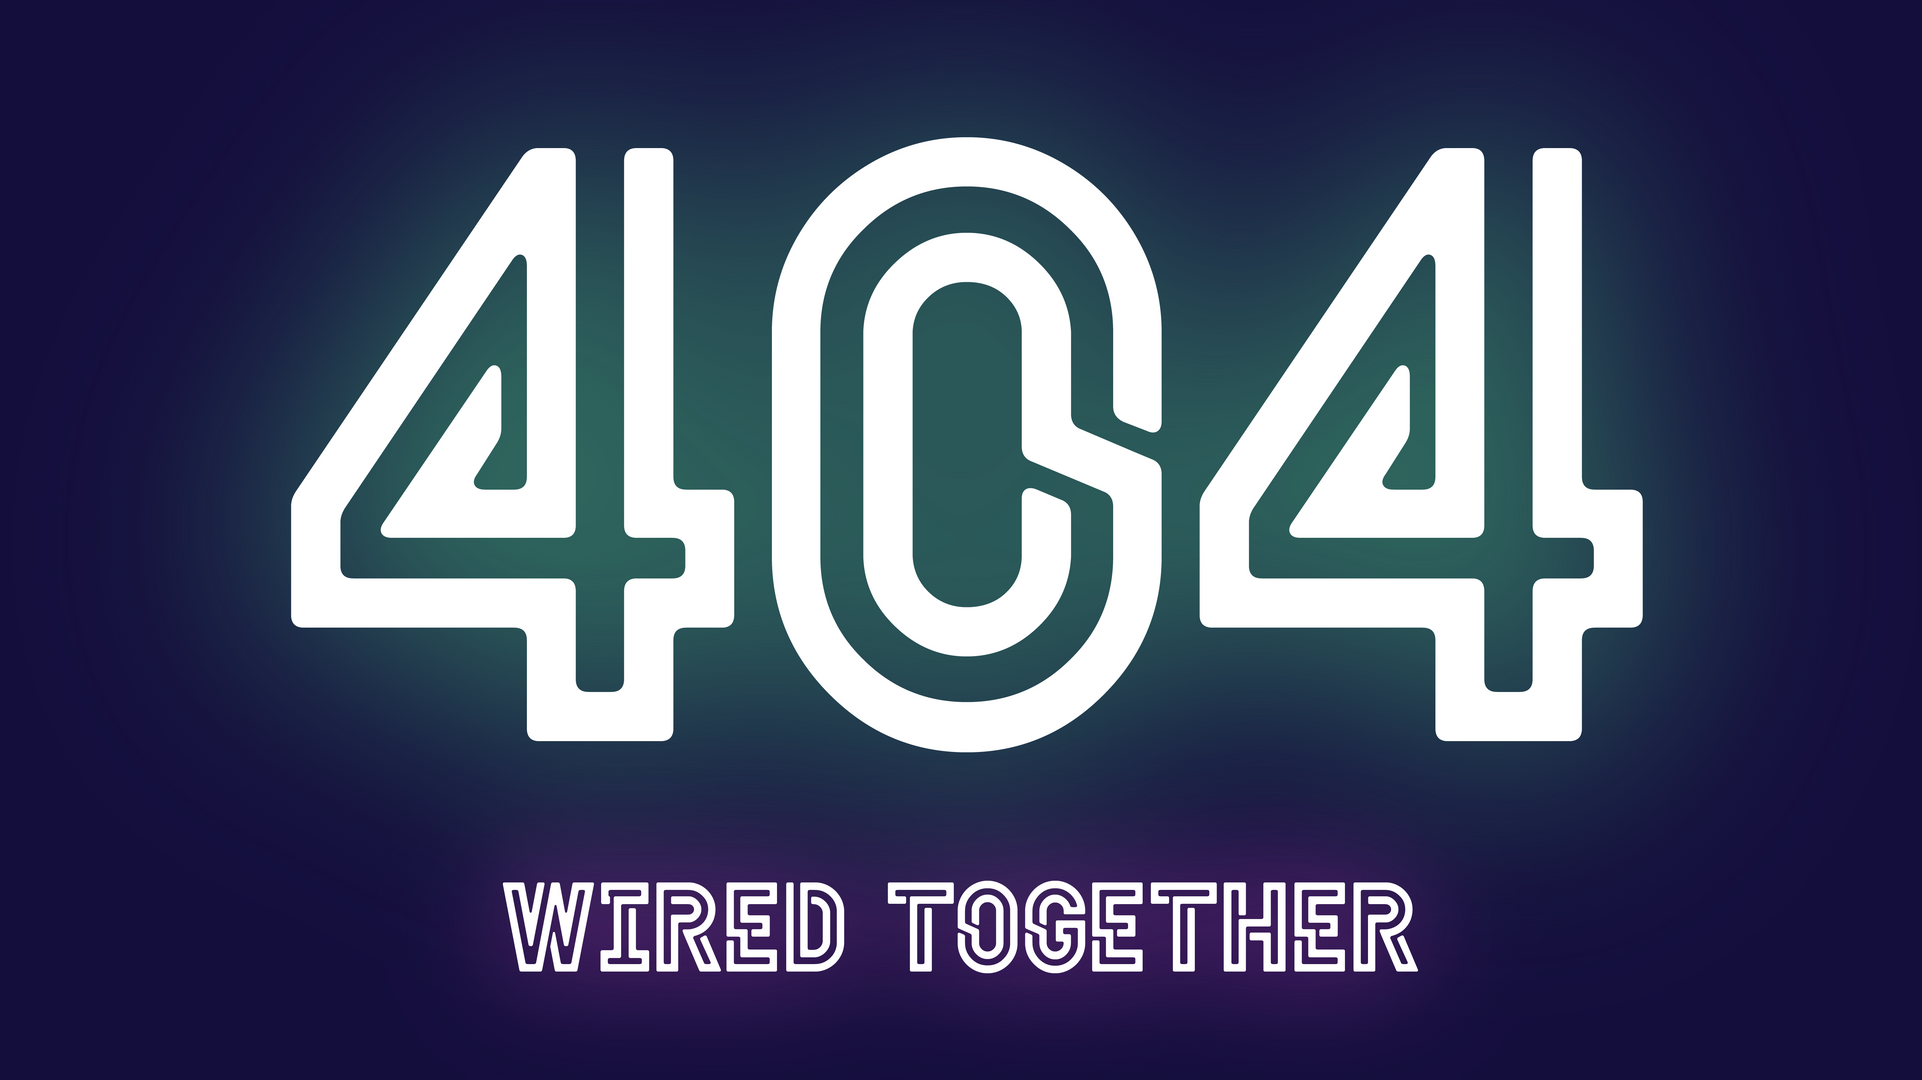 Wired Together